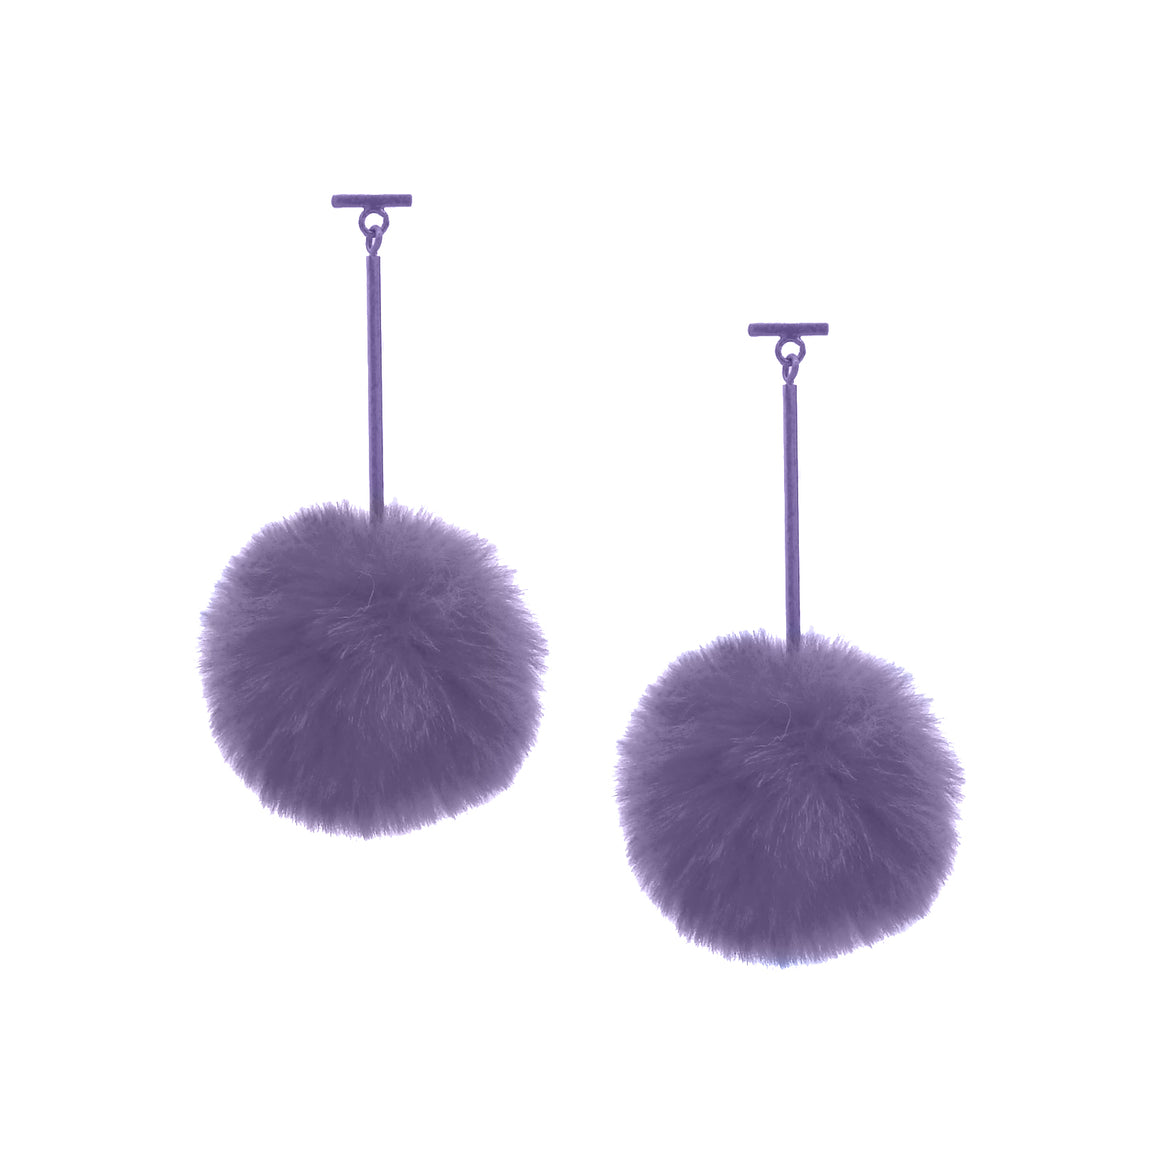 "SATU | Lilac 2"" Faux Fur T Bar Pom Pom Earrings, Earrings, Tuleste, Tuleste"